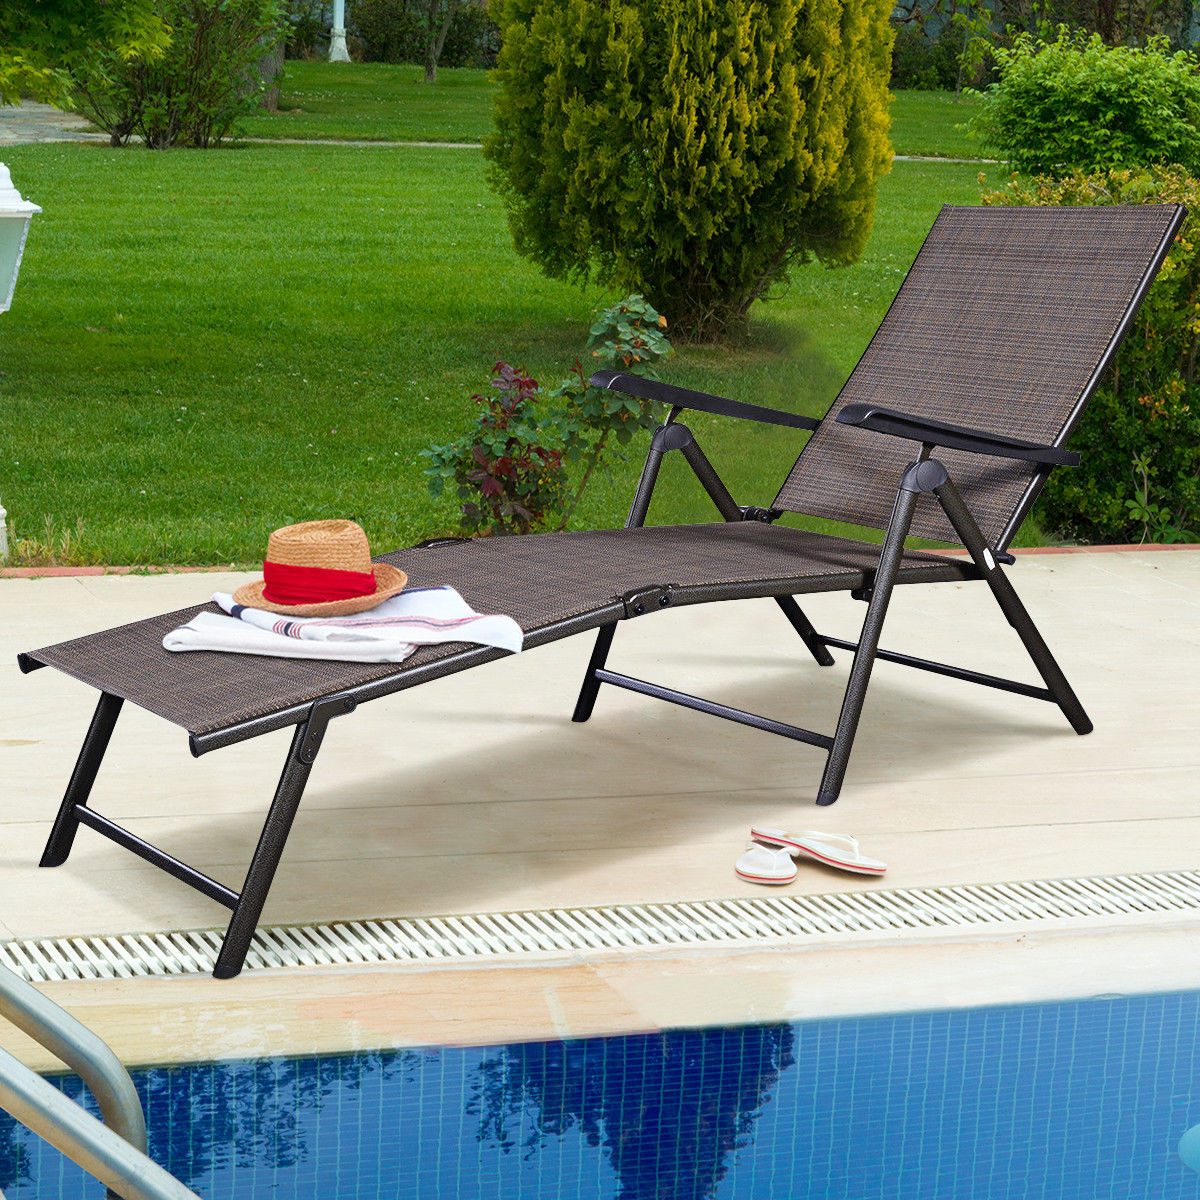 costway pool chaise lounge chair recliner outdoor patio furniture adjustable